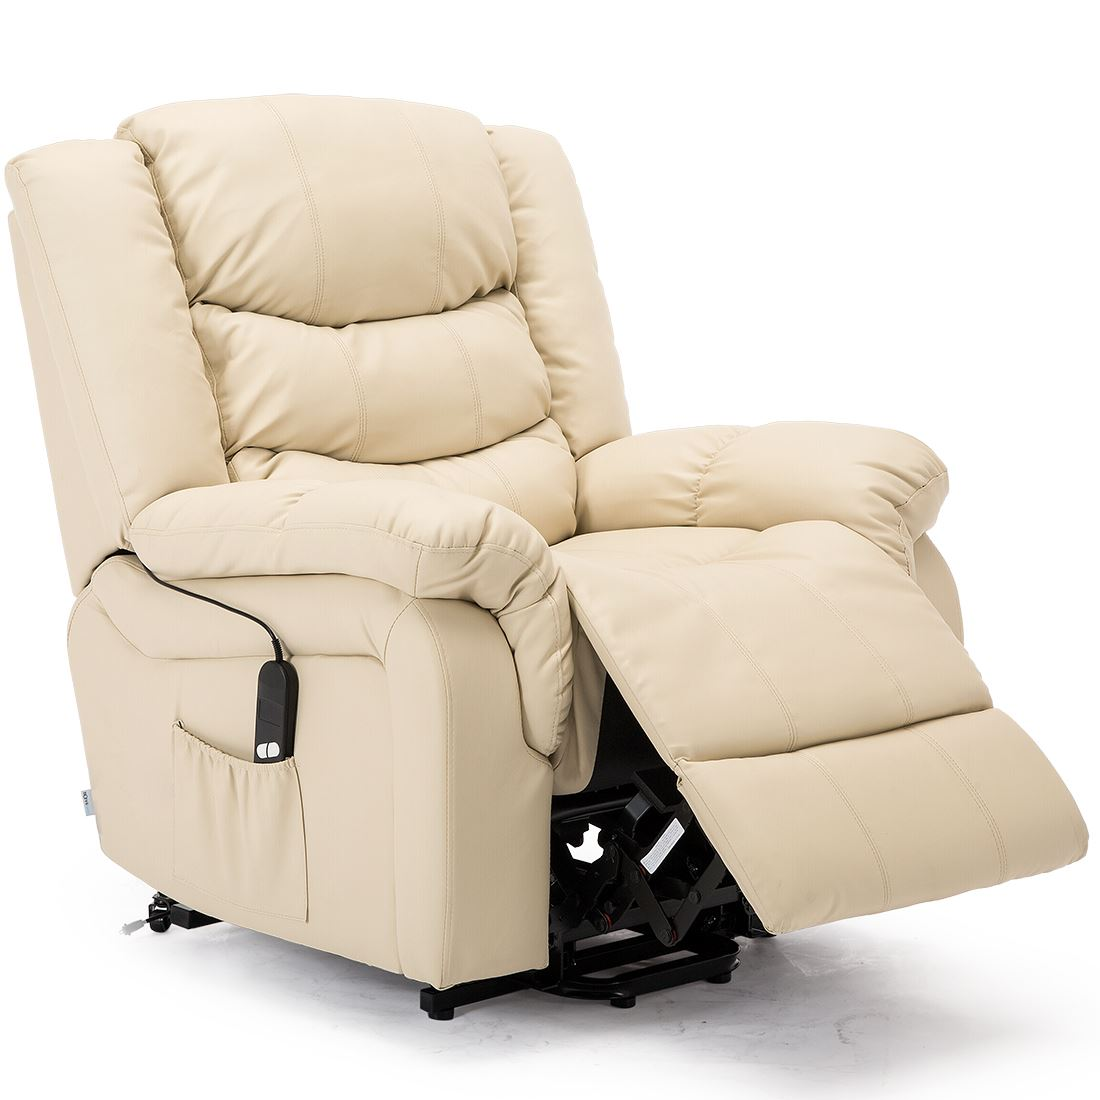 SEATTLE-ELECTRIC-RISE-REAL-LEATHER-RECLINER-ARMCHAIR-SOFA-HOME-LOUNGE-CHAIR thumbnail 24